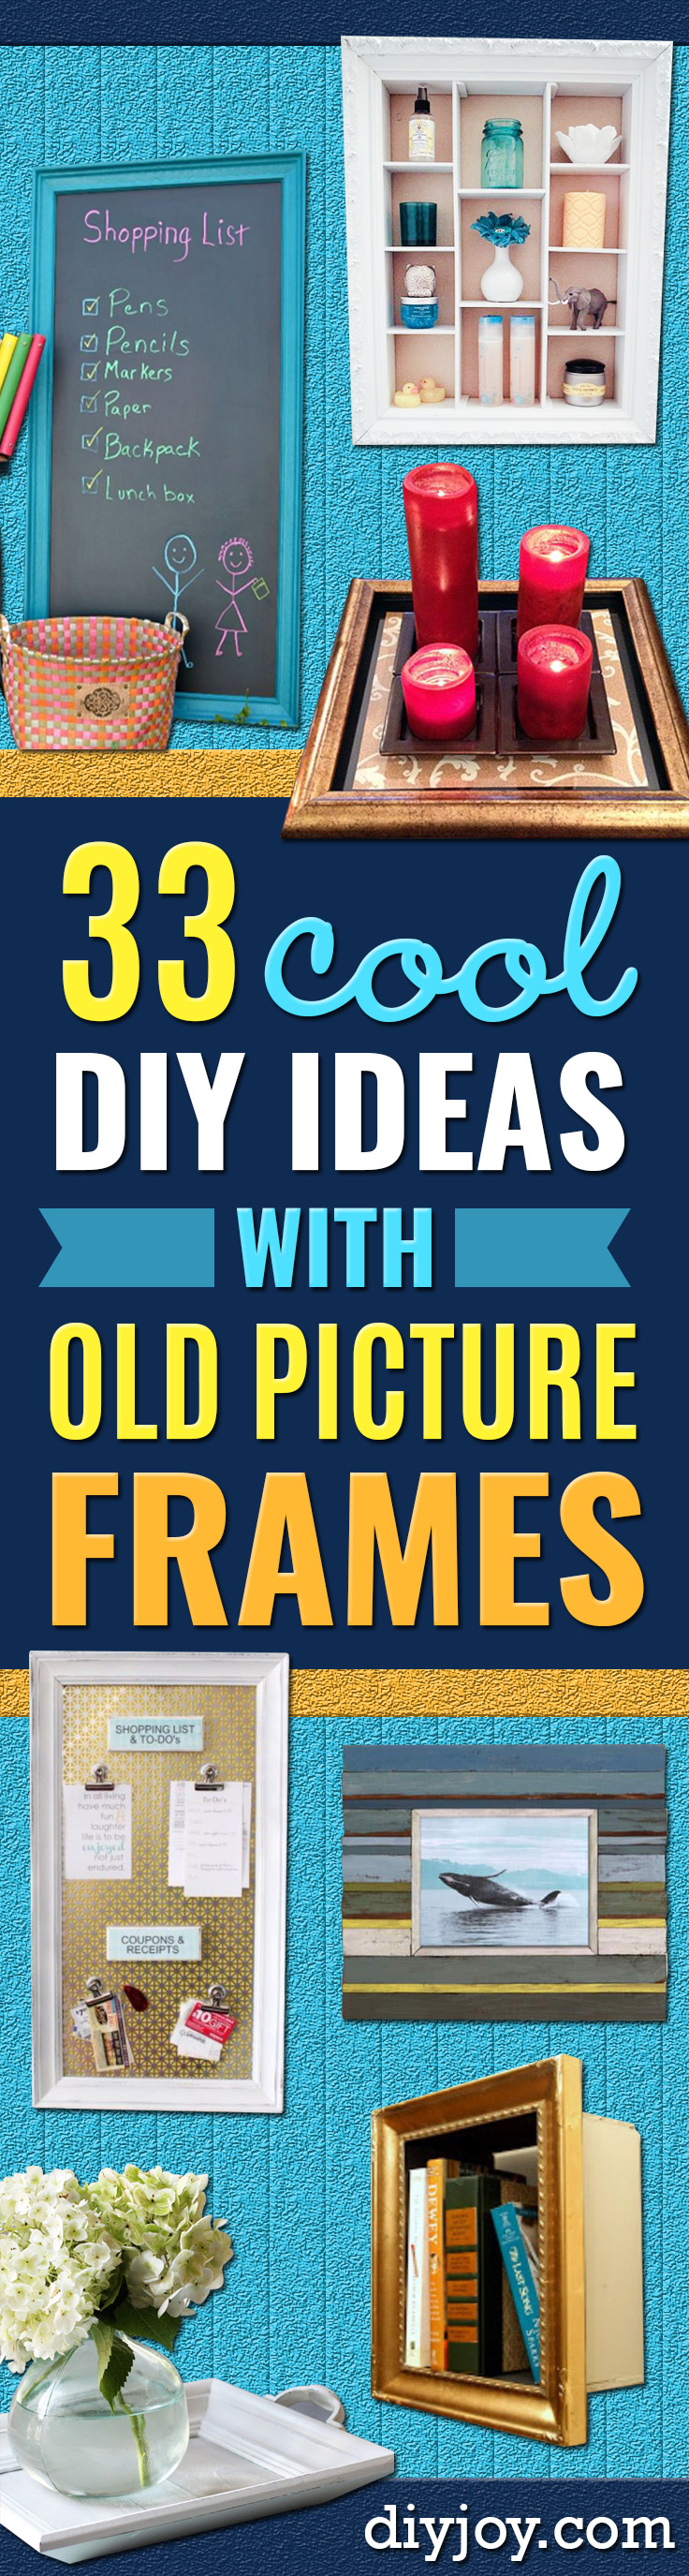 DIY Ideas With Old Picture Frames - Cool Crafts To Make With A Repurposed Picture Frame - Cheap Do It Yourself Gifts and Home Decor on A Budget - Fun Ideas for Decorating Your House and Room http://diyjoy.com/diy-ideas-picture-frames